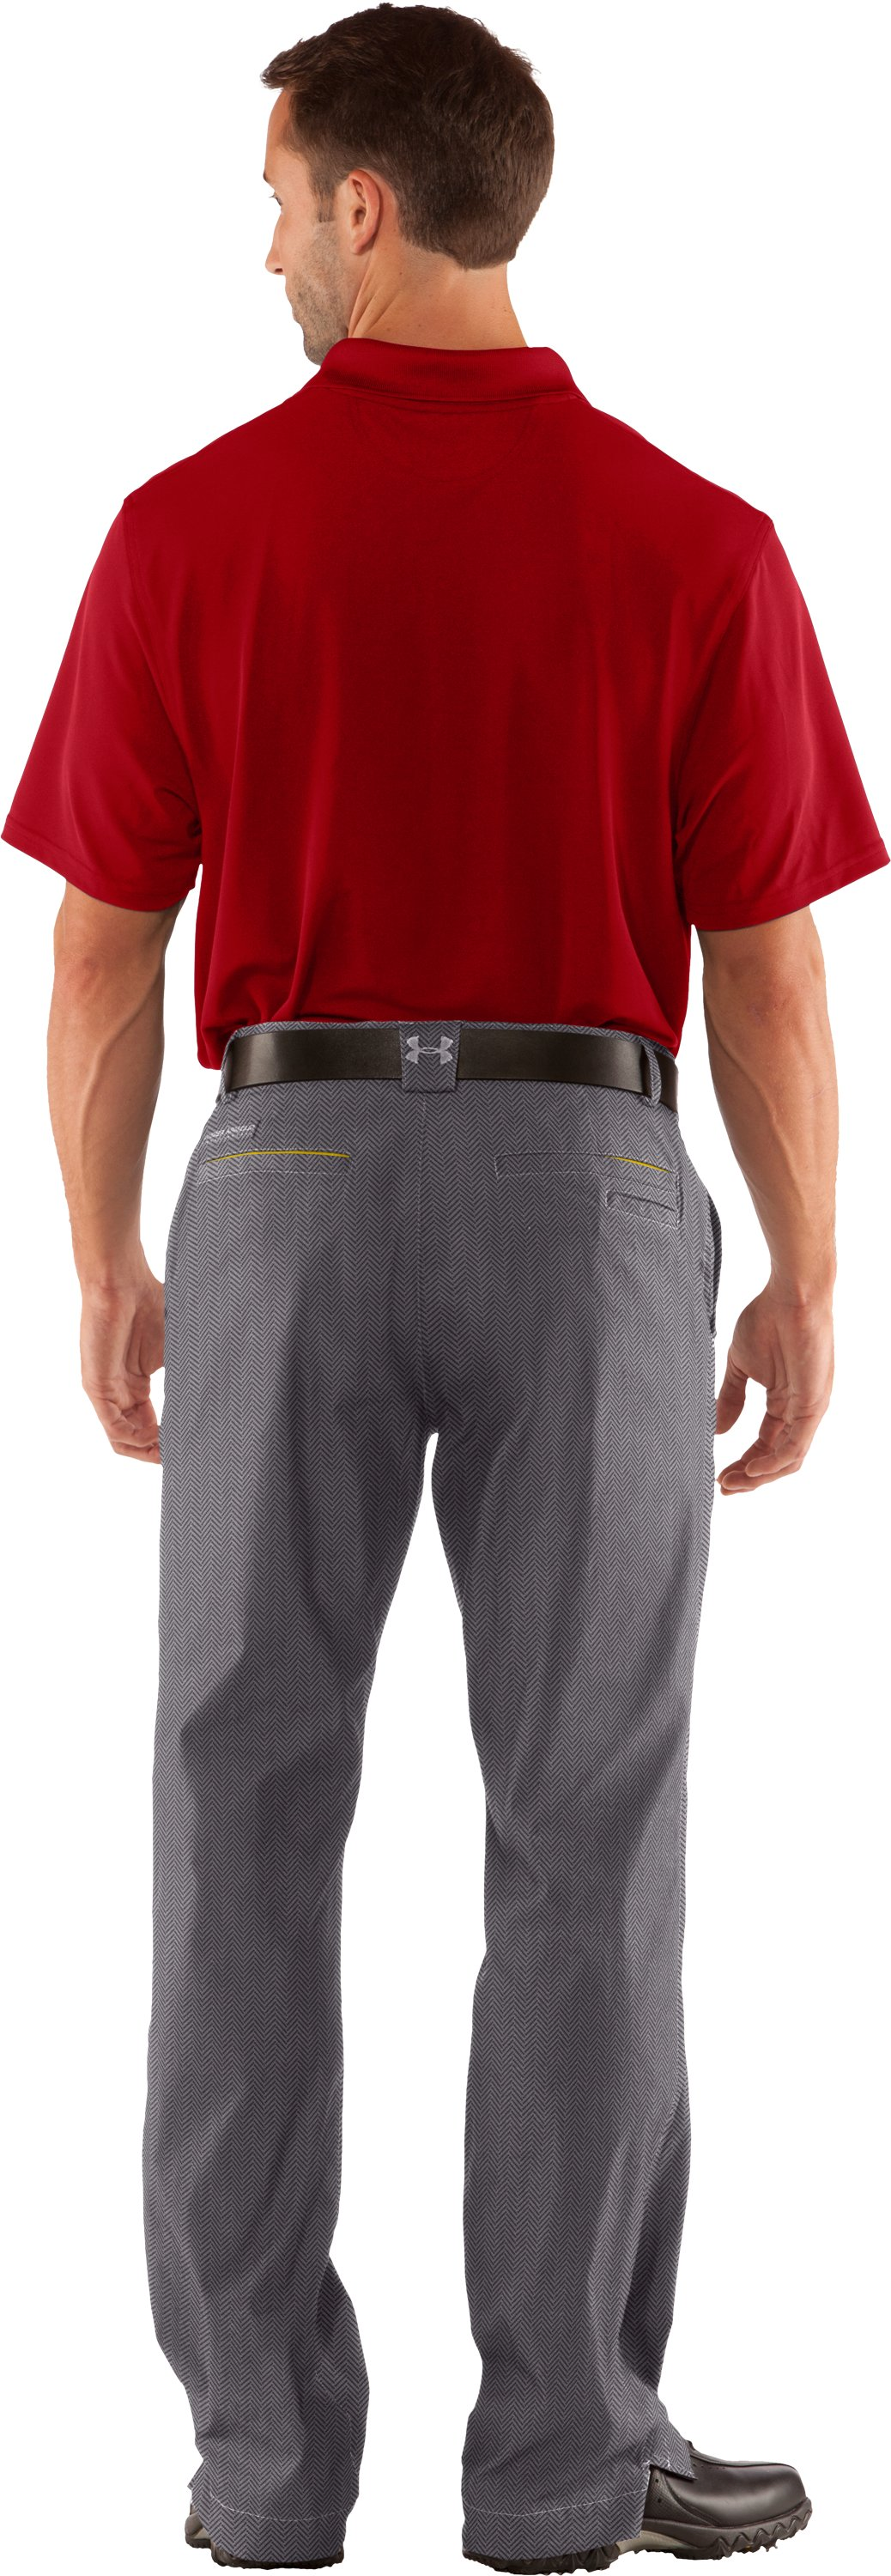 Men's AllSeasonGear® Storm Golf Pants, Concrete, Back